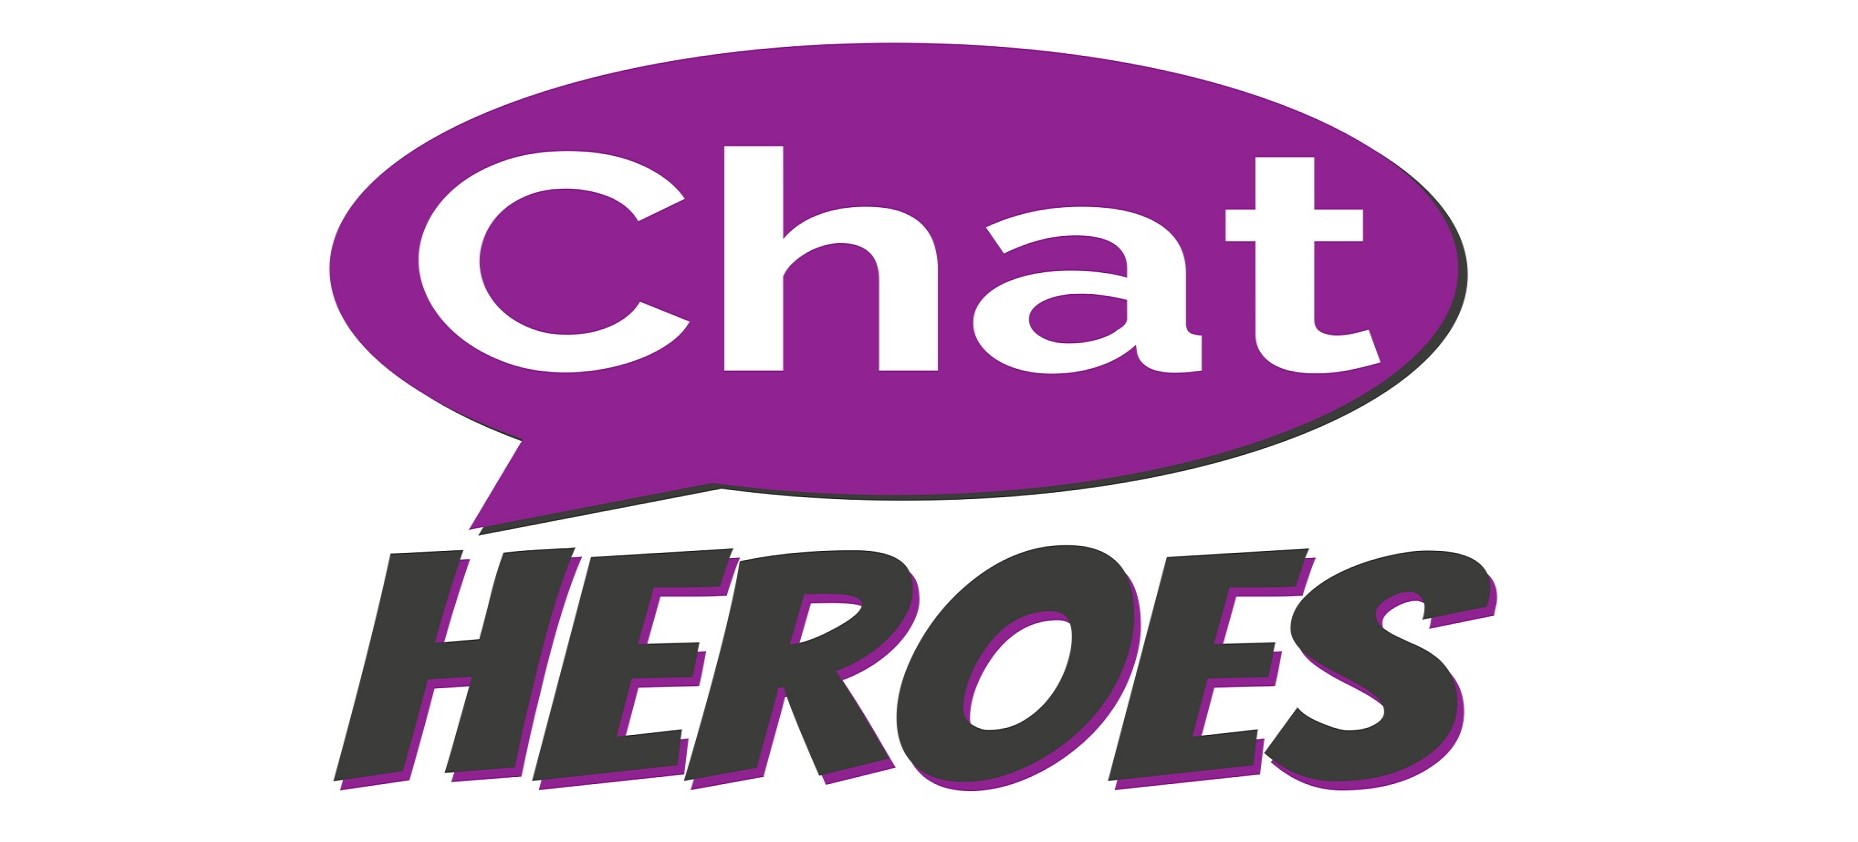 Chat Heroes manned live chat